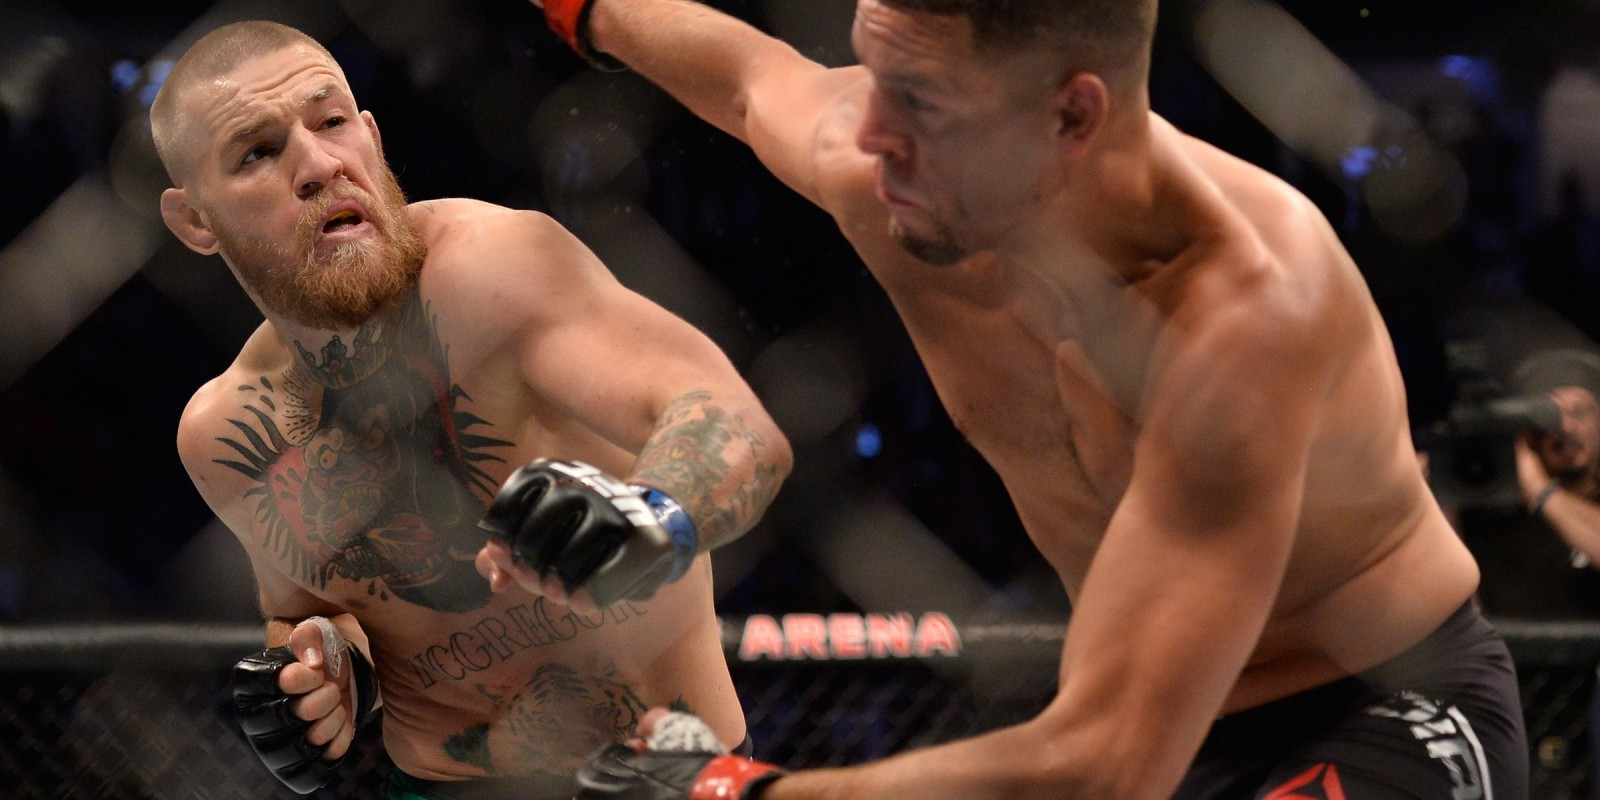 Conor McGregor punches Nate Diaz in their welterweight bout during the UFC 202 event at T-Mobile Arena on August 20, 2016 in Las Vegas, Nevada.